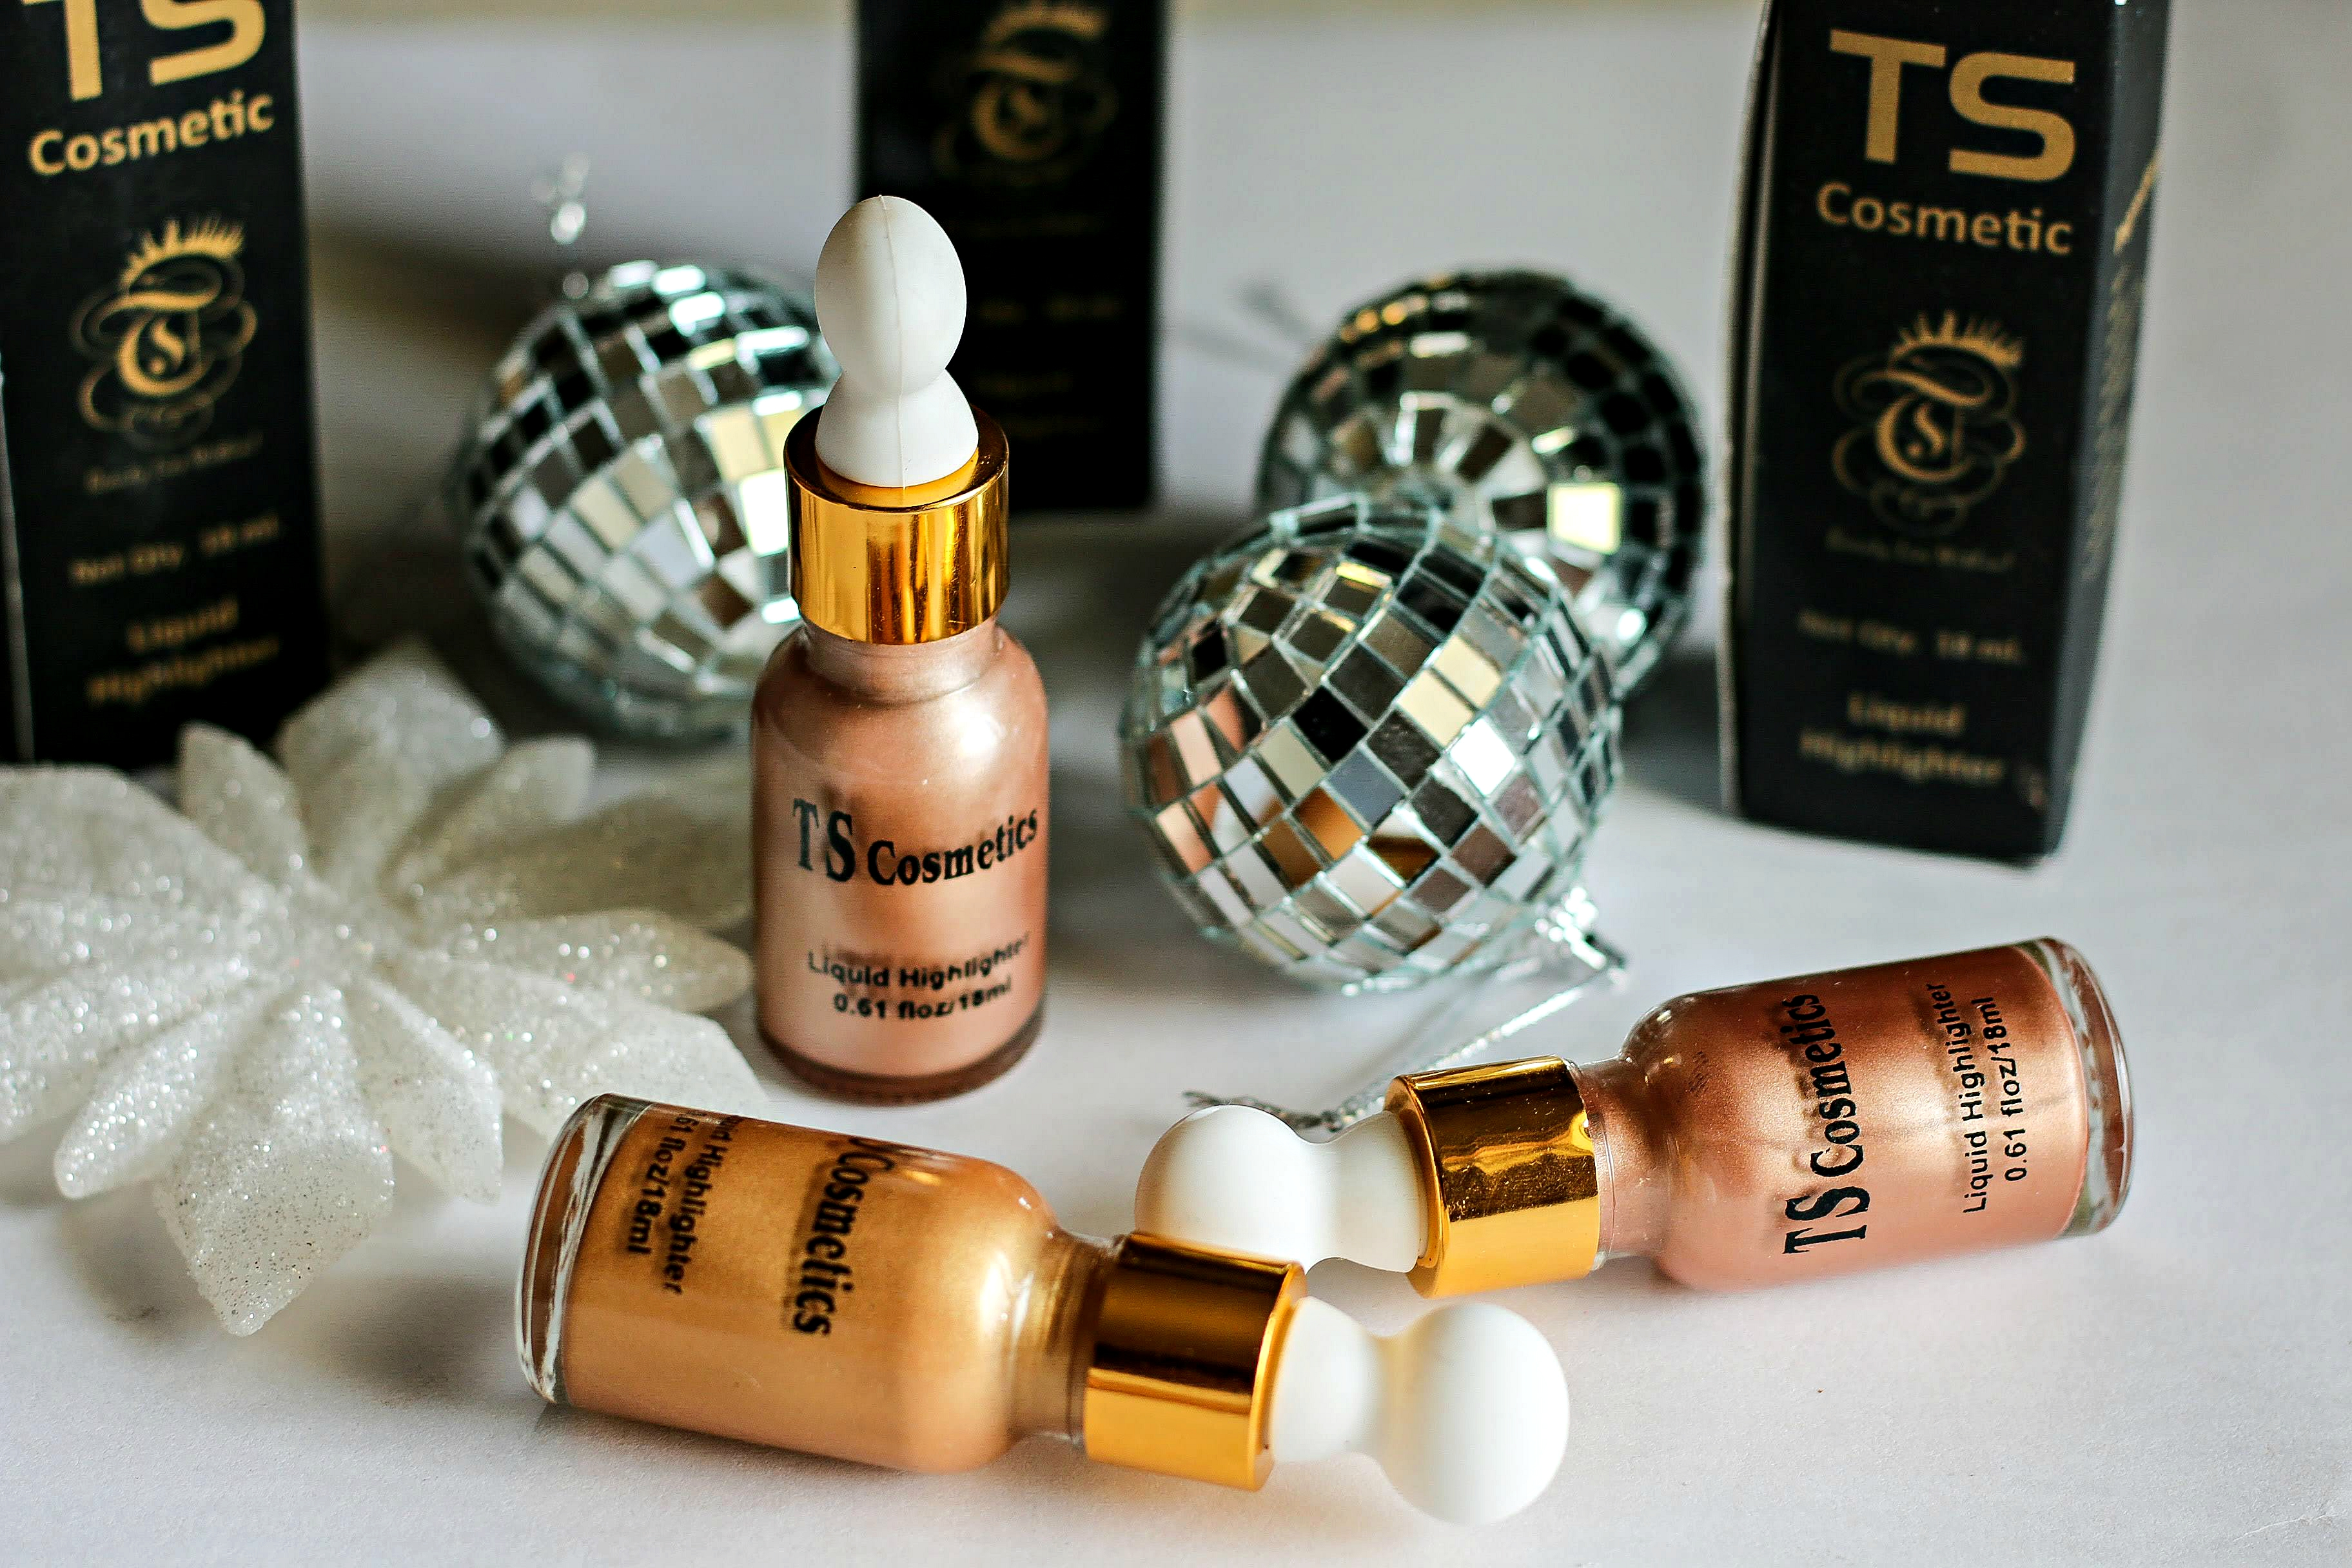 Best Liquid Highlighters in India ? TS Cosmetics Liquid Highlighters | Review & Swatches